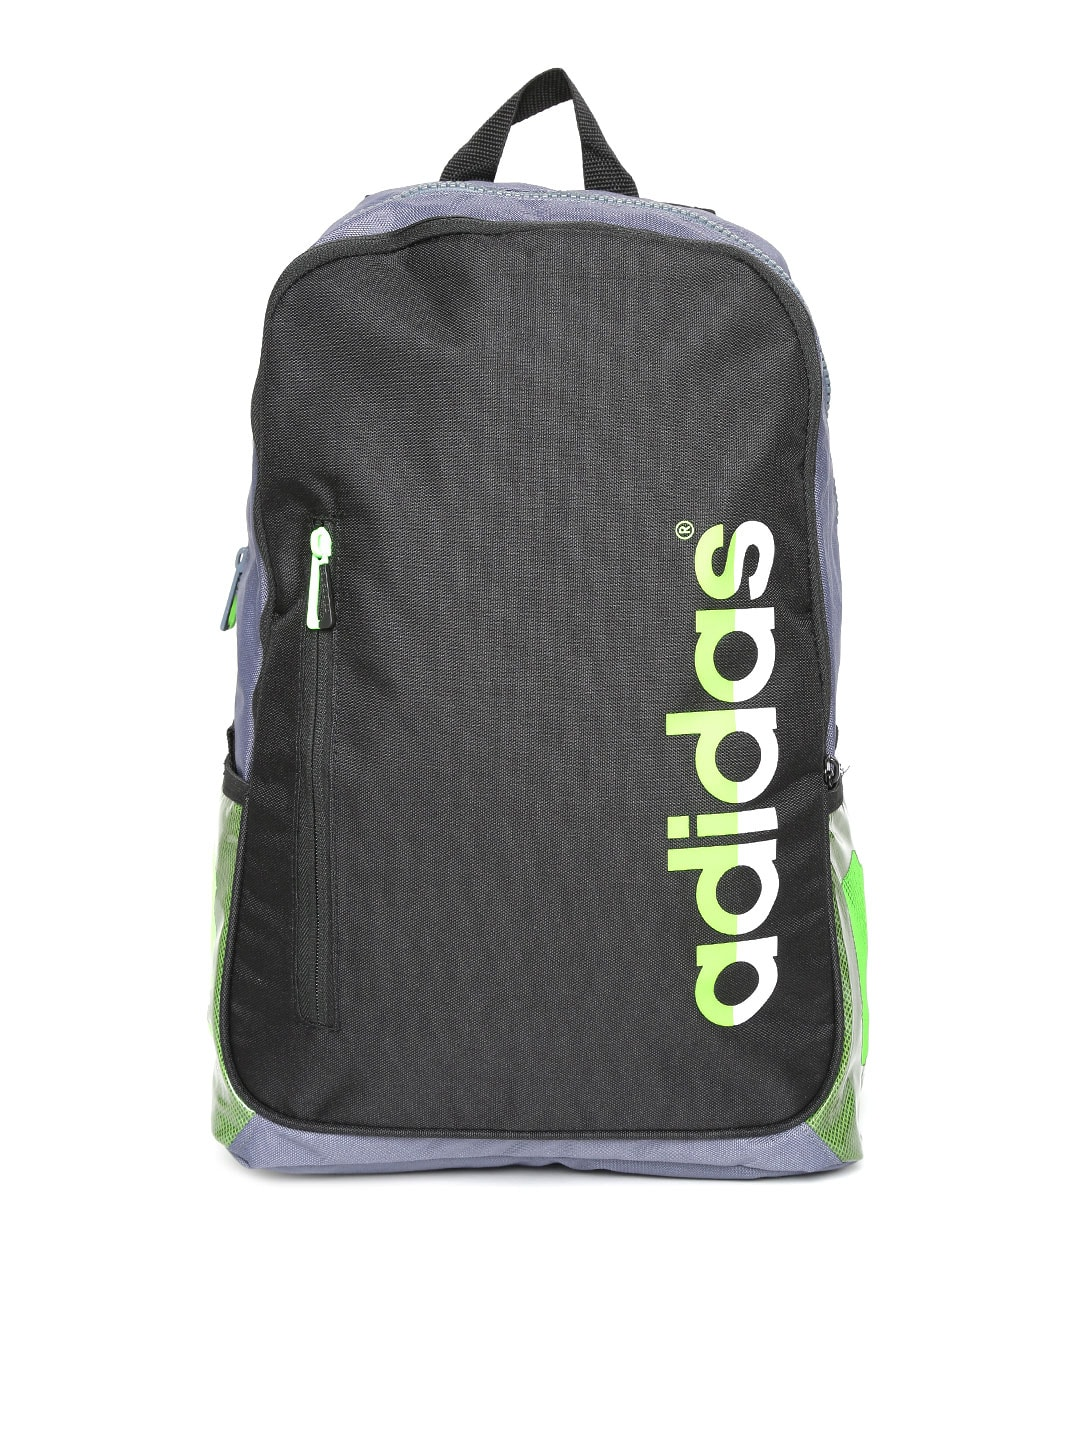 c2412911a5c adidas neo bag on sale > OFF66% Discounted